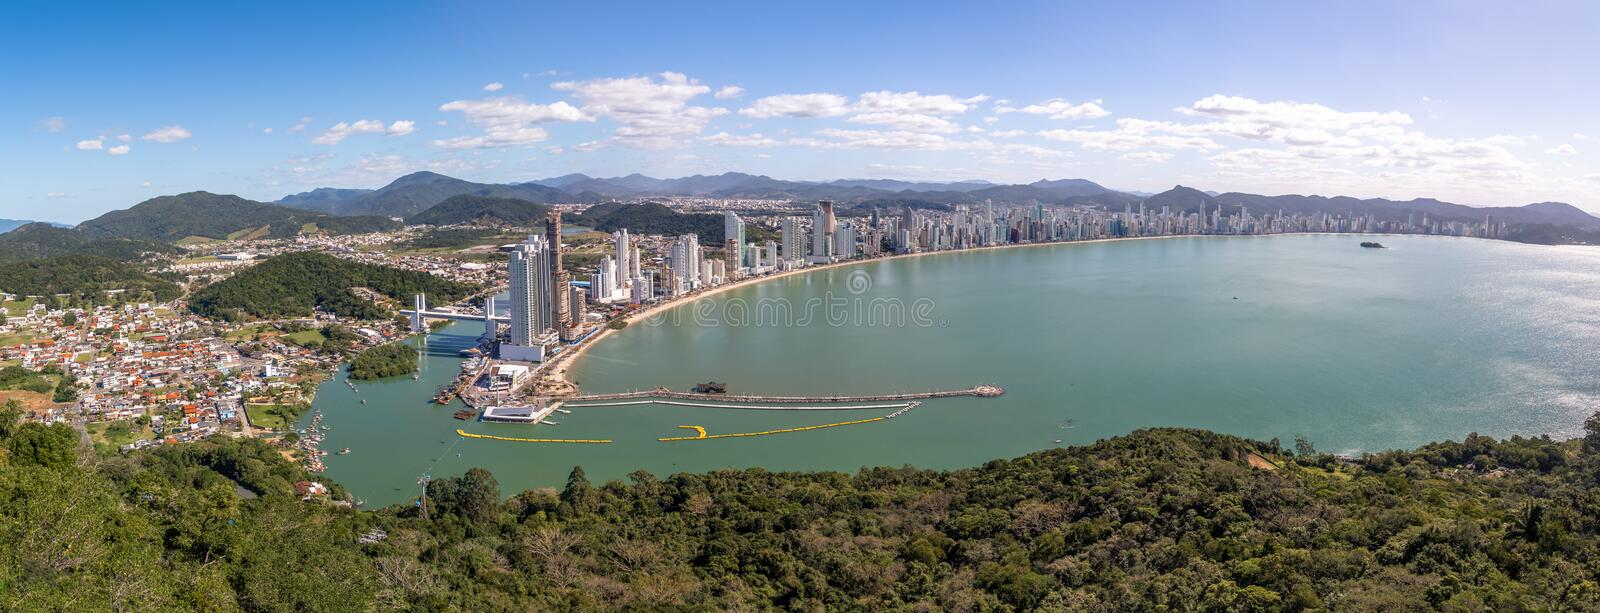 Panoramic aerial view of Balneario Camboriu city - Balneario Camboriu, Santa Catarina, Brazil royalty free stock image